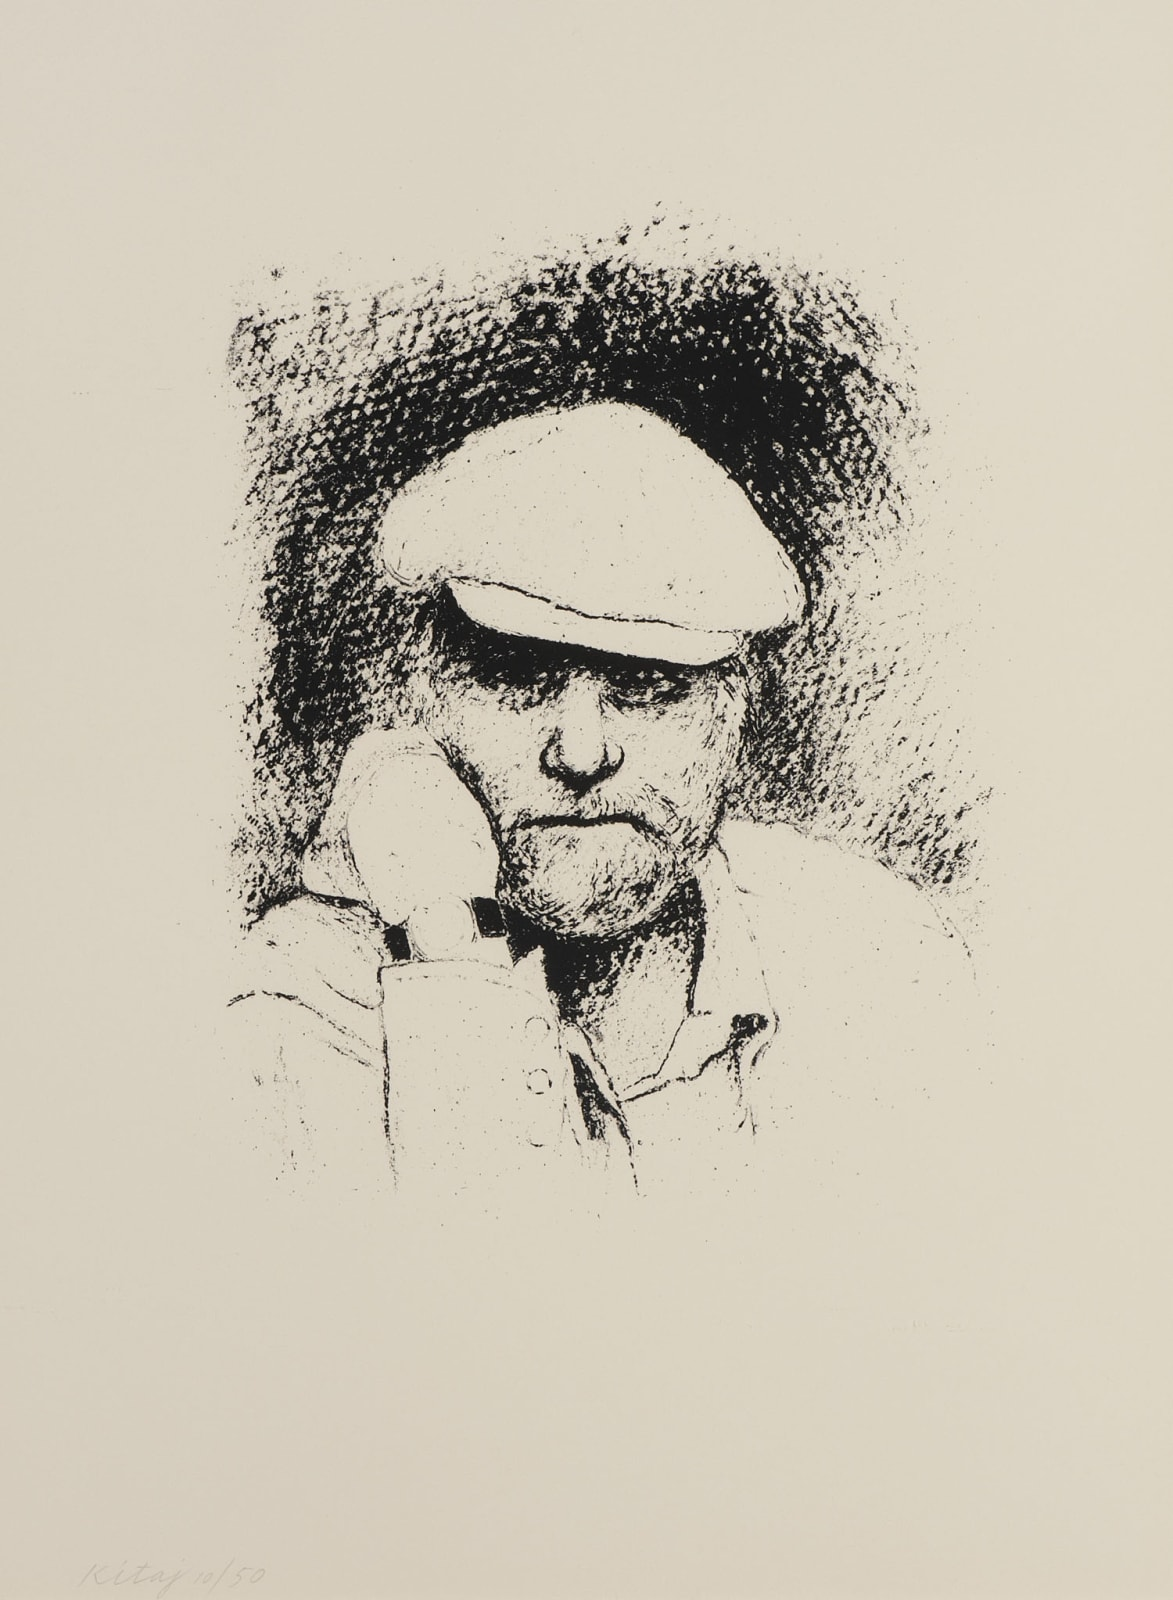 R. B. Kitaj (1932-2007) Self Portrait with Cap 1975-76 Lithograph on paper 73 x 53.8 cm Ben Uri Collection © R. B. Kitaj estate To see and discover more about this artist click here